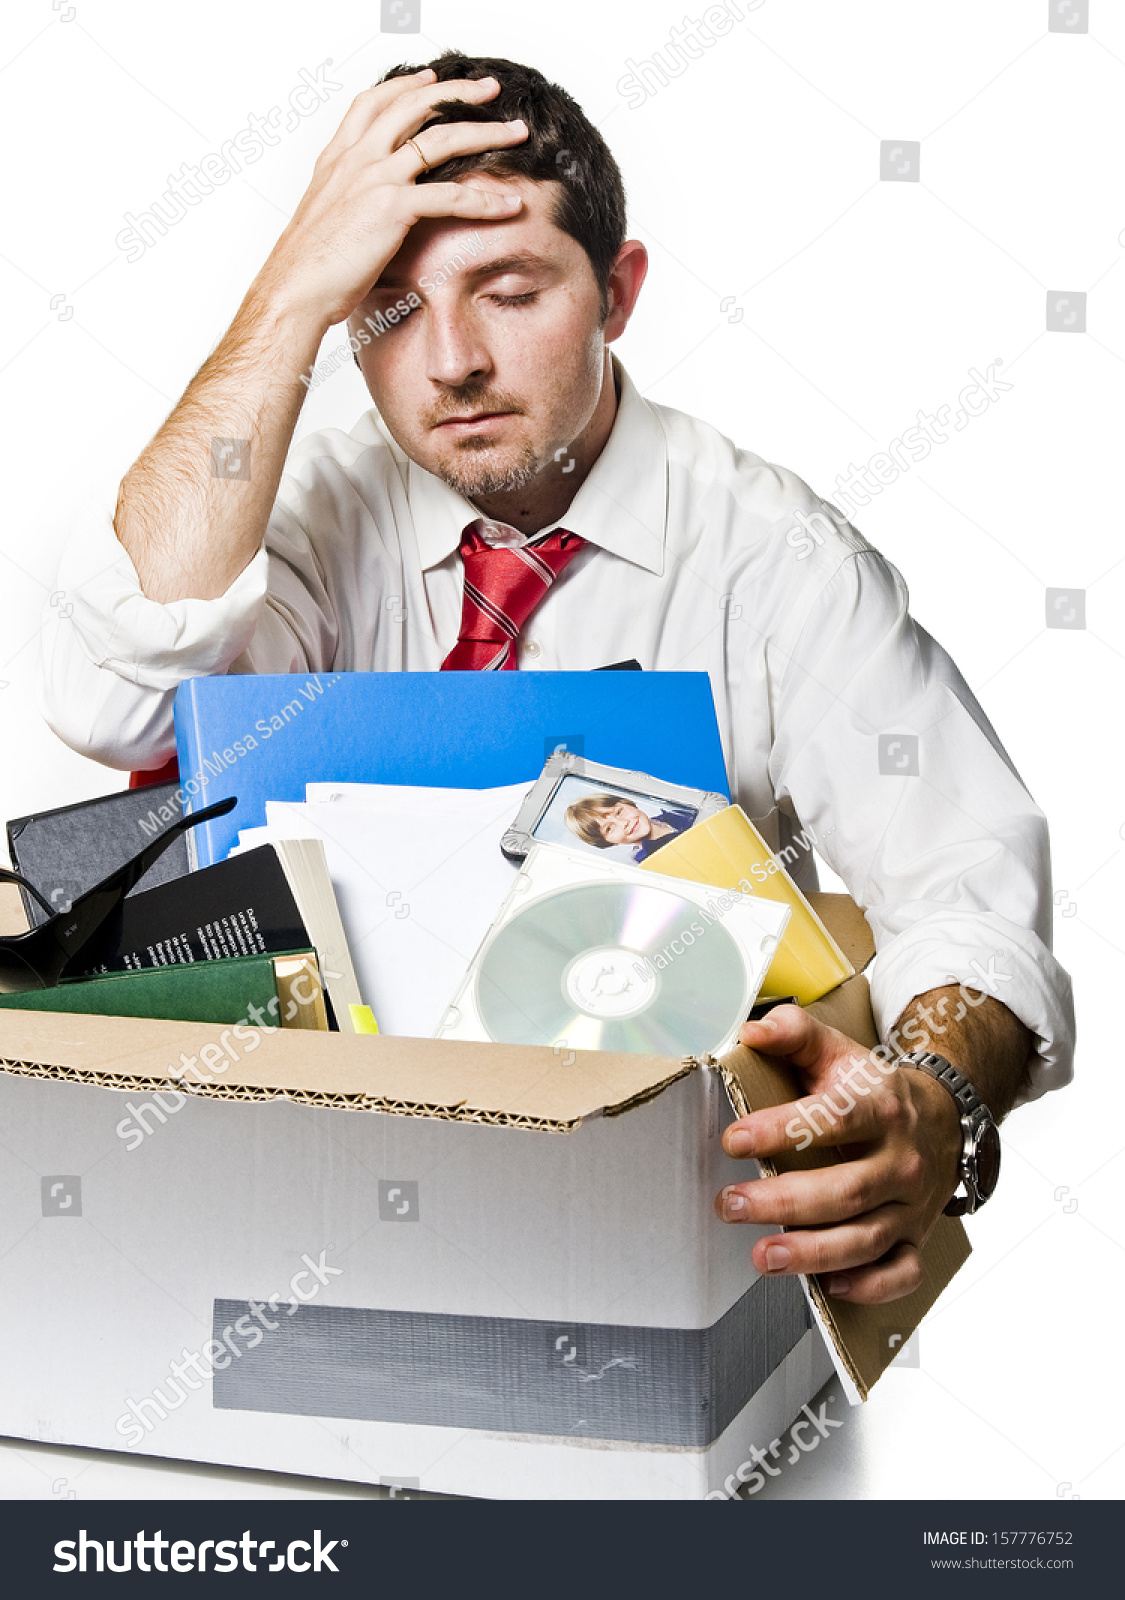 desperate man cardboard box fired job stock photo 157776752 desperate man cardboard box fired from job